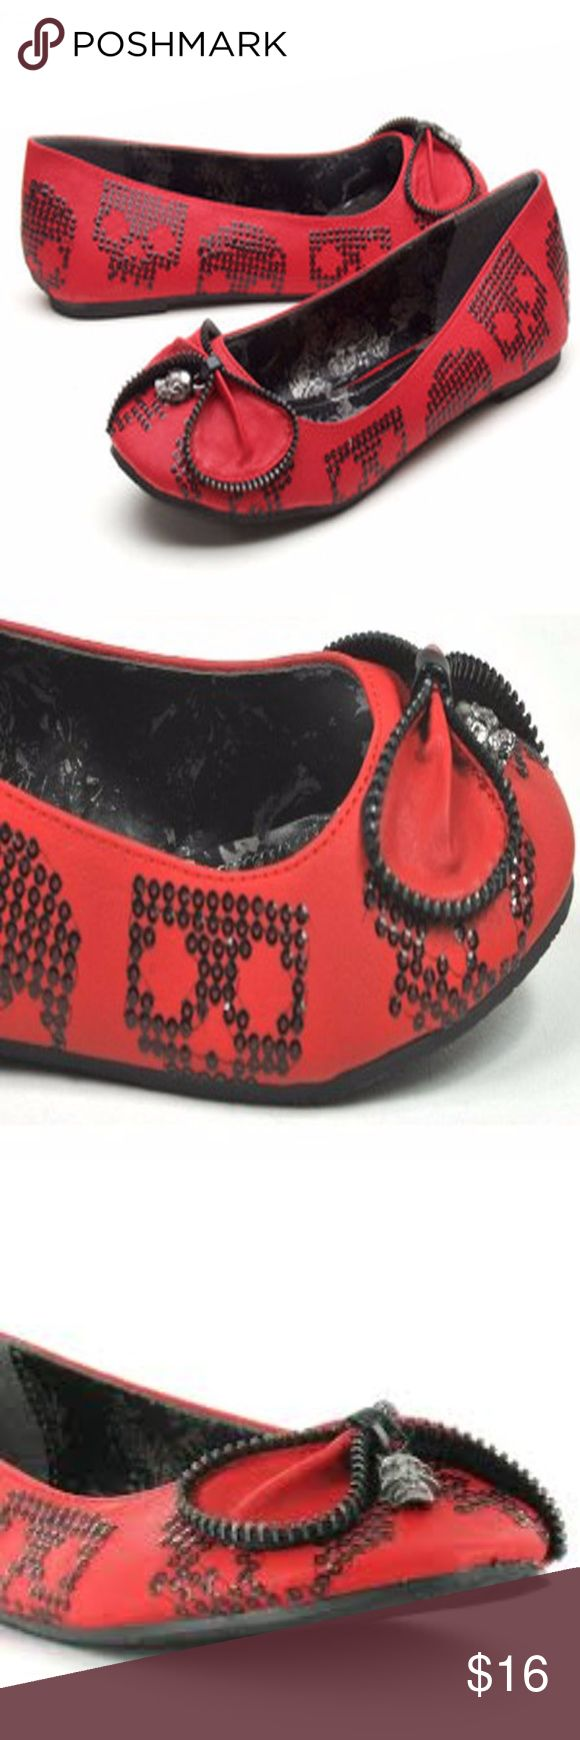 Iron Fist Ladies Ruff Rider Flat Closed toe flats with sparkling black skulls, zipper trim detail, and skull charm. Brand new, never worn! Iron Fist Shoes Flats & Loafers